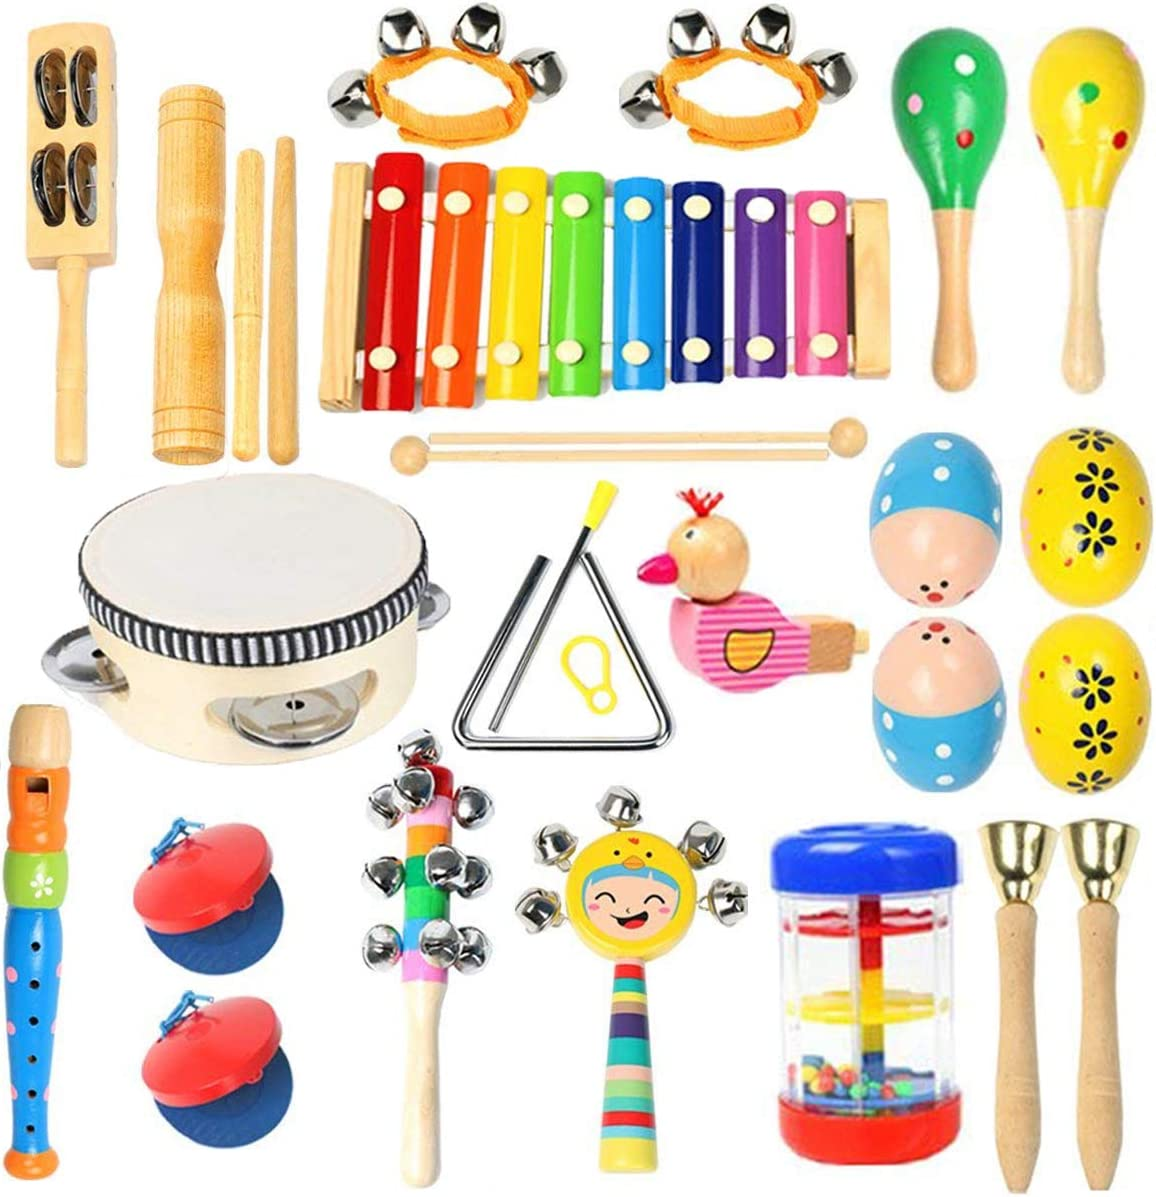 Ehome Toddler Musical Instruments, Wooden Percussion Instruments Educational Preschool Toy for Kids Baby Instrument Musical Toys Set for Boys and Girls with Storage Bag: Toys & Games